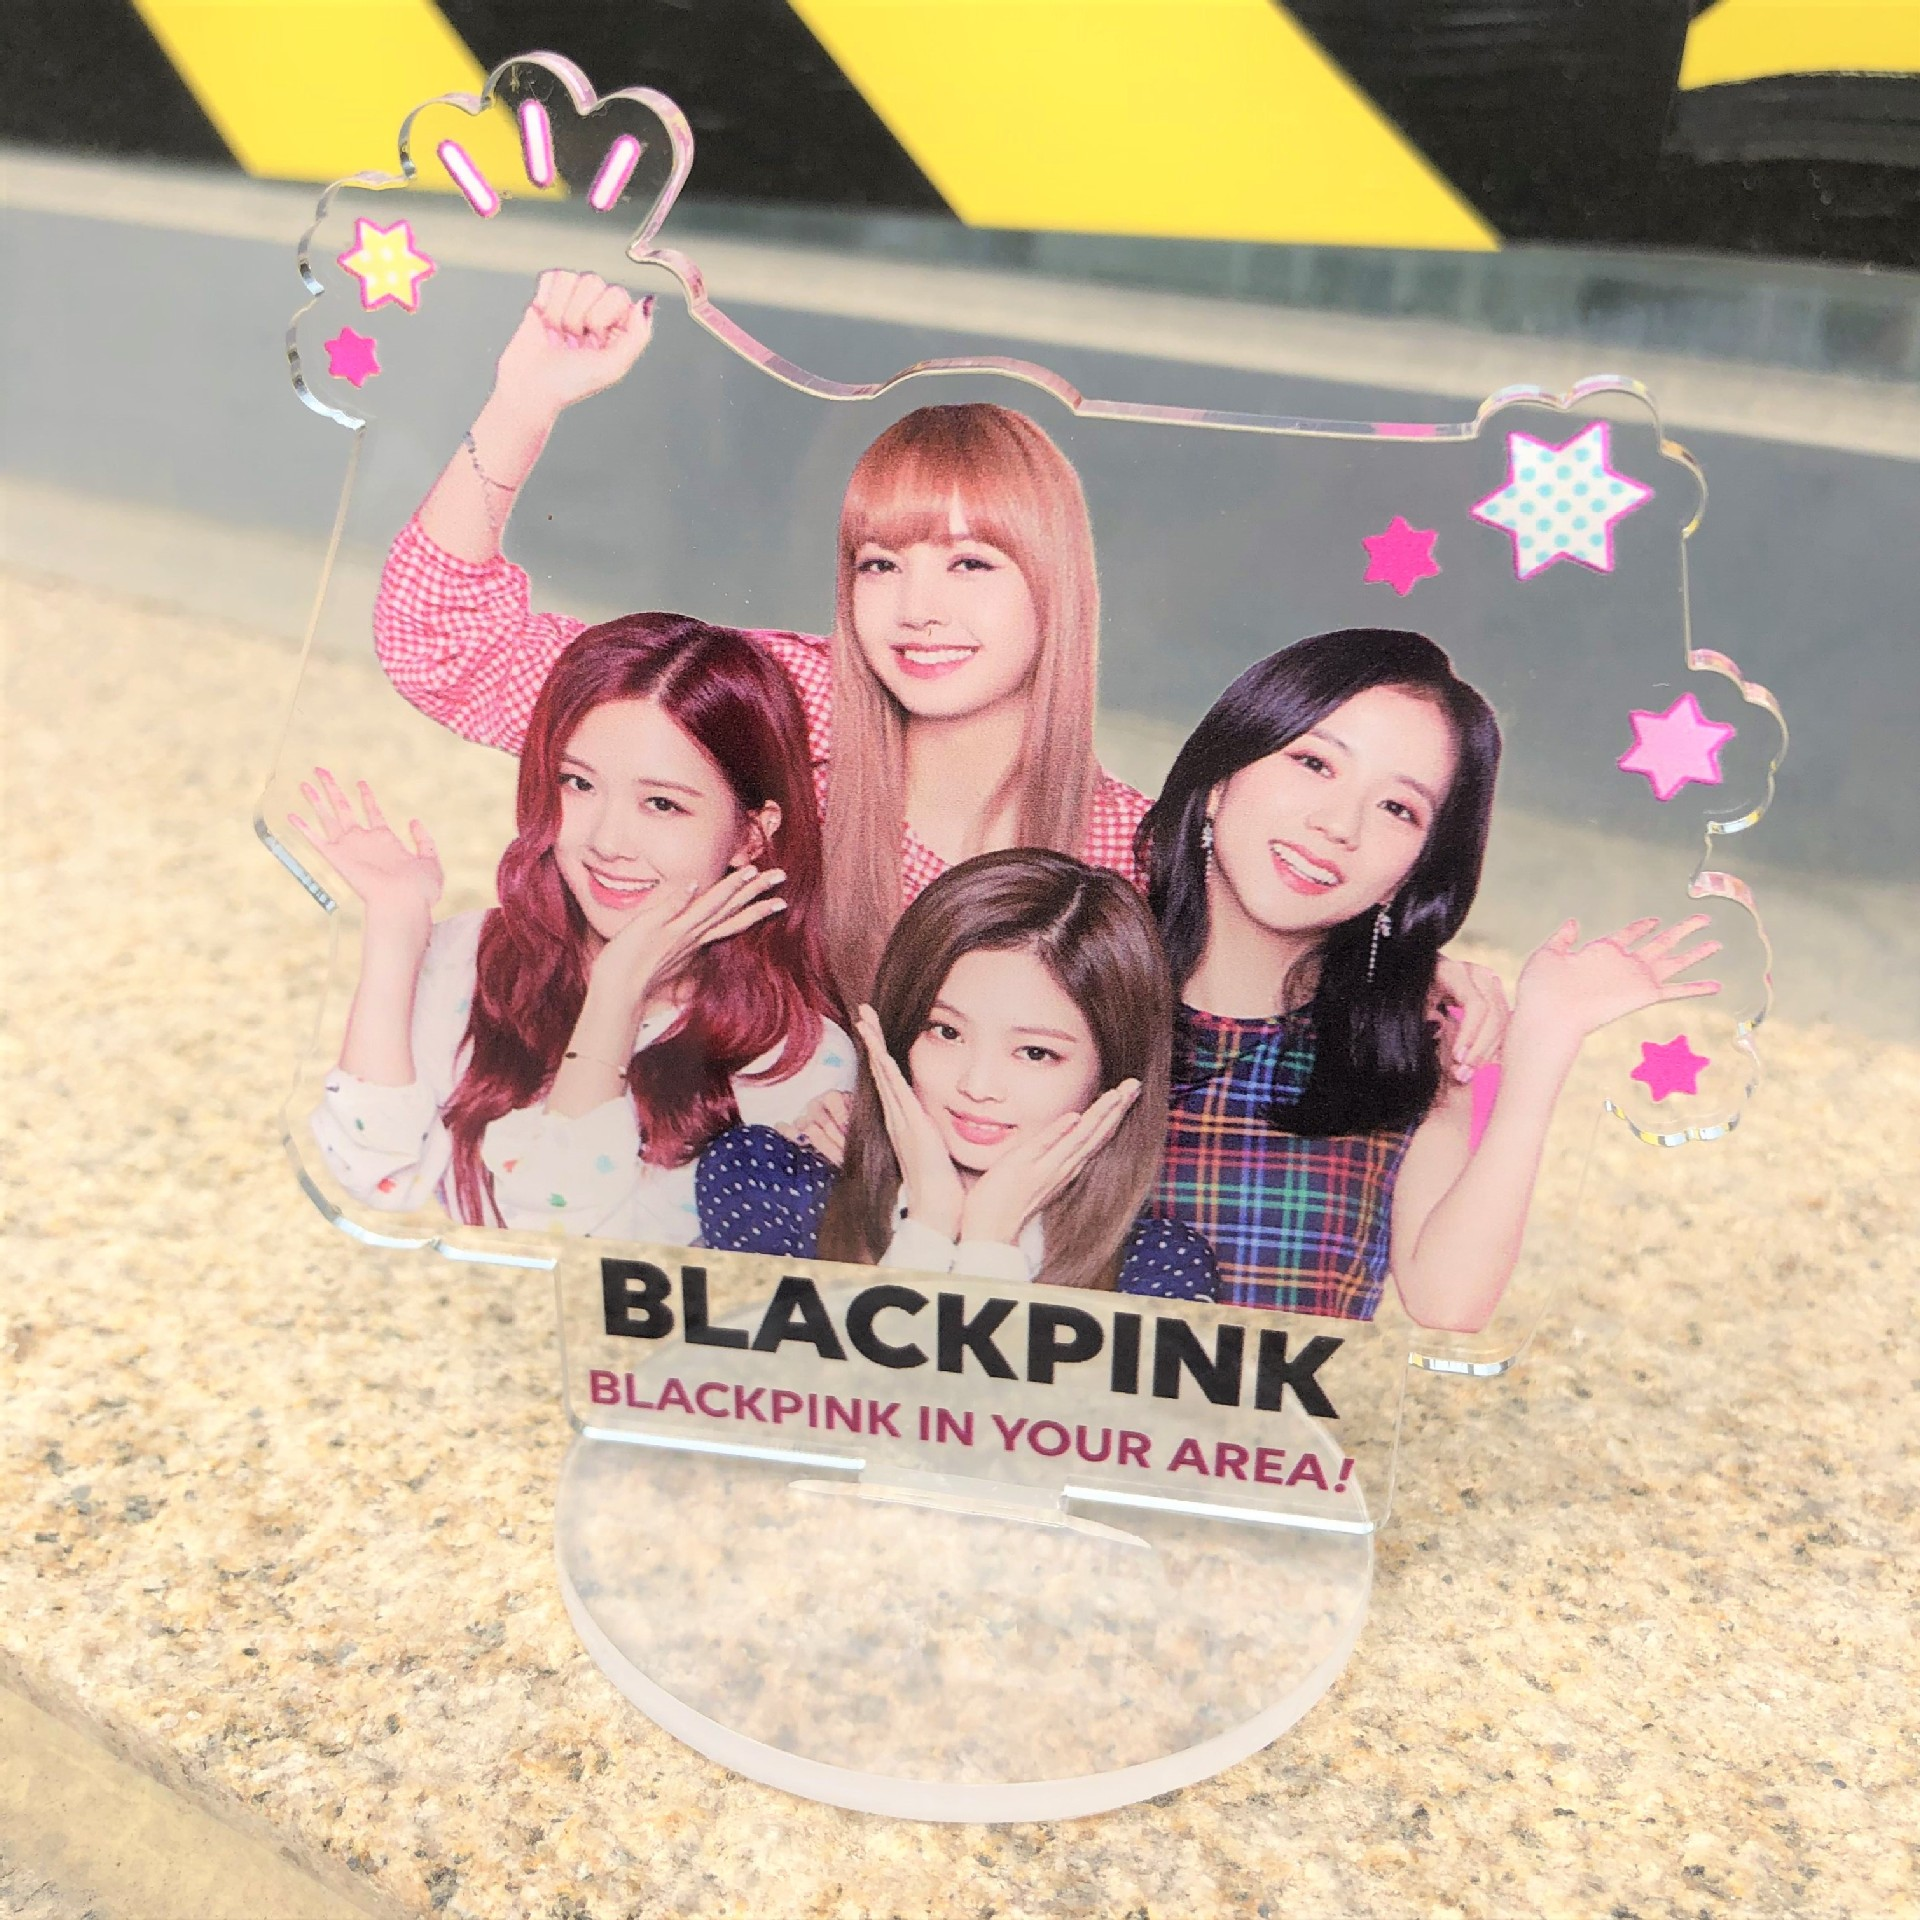 KPOP Creative Blackpink Acrylic Decorate Picture On The Table Blackpink Kpop Korean Supplies For Fans Collection